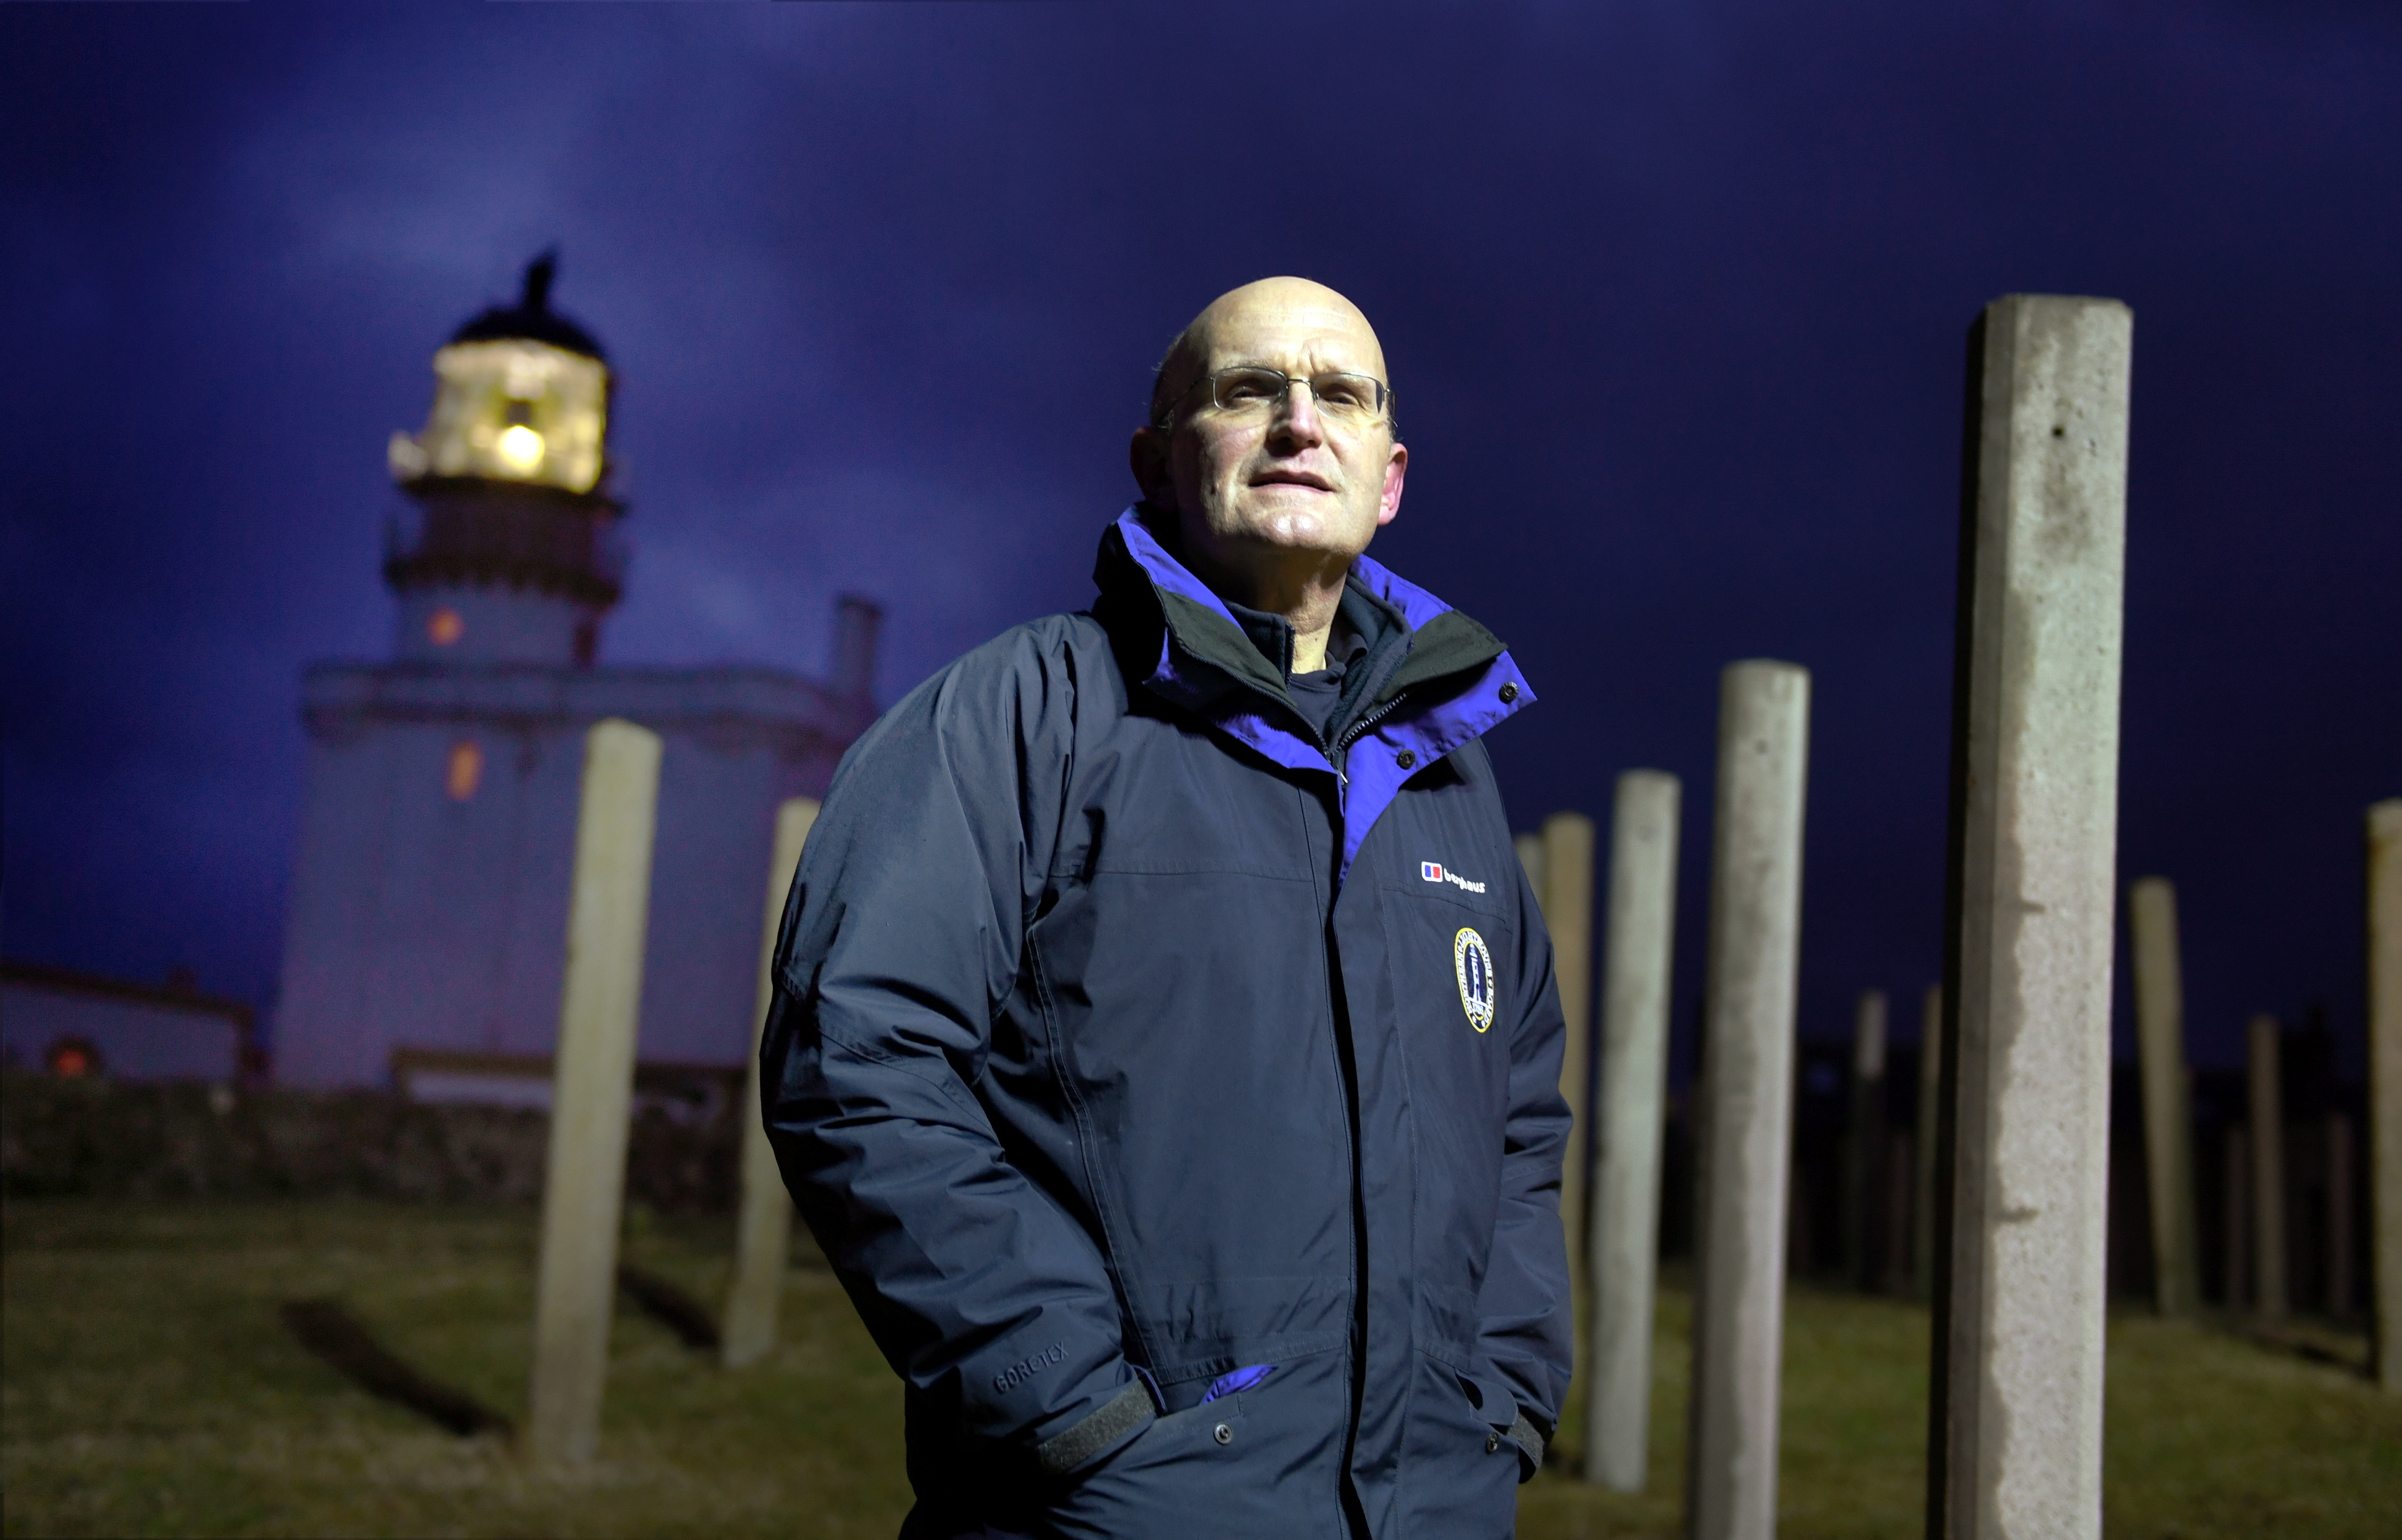 CEO of the Northern Lighthouse Board Mike Bullock who switched the light off after 24 hours.